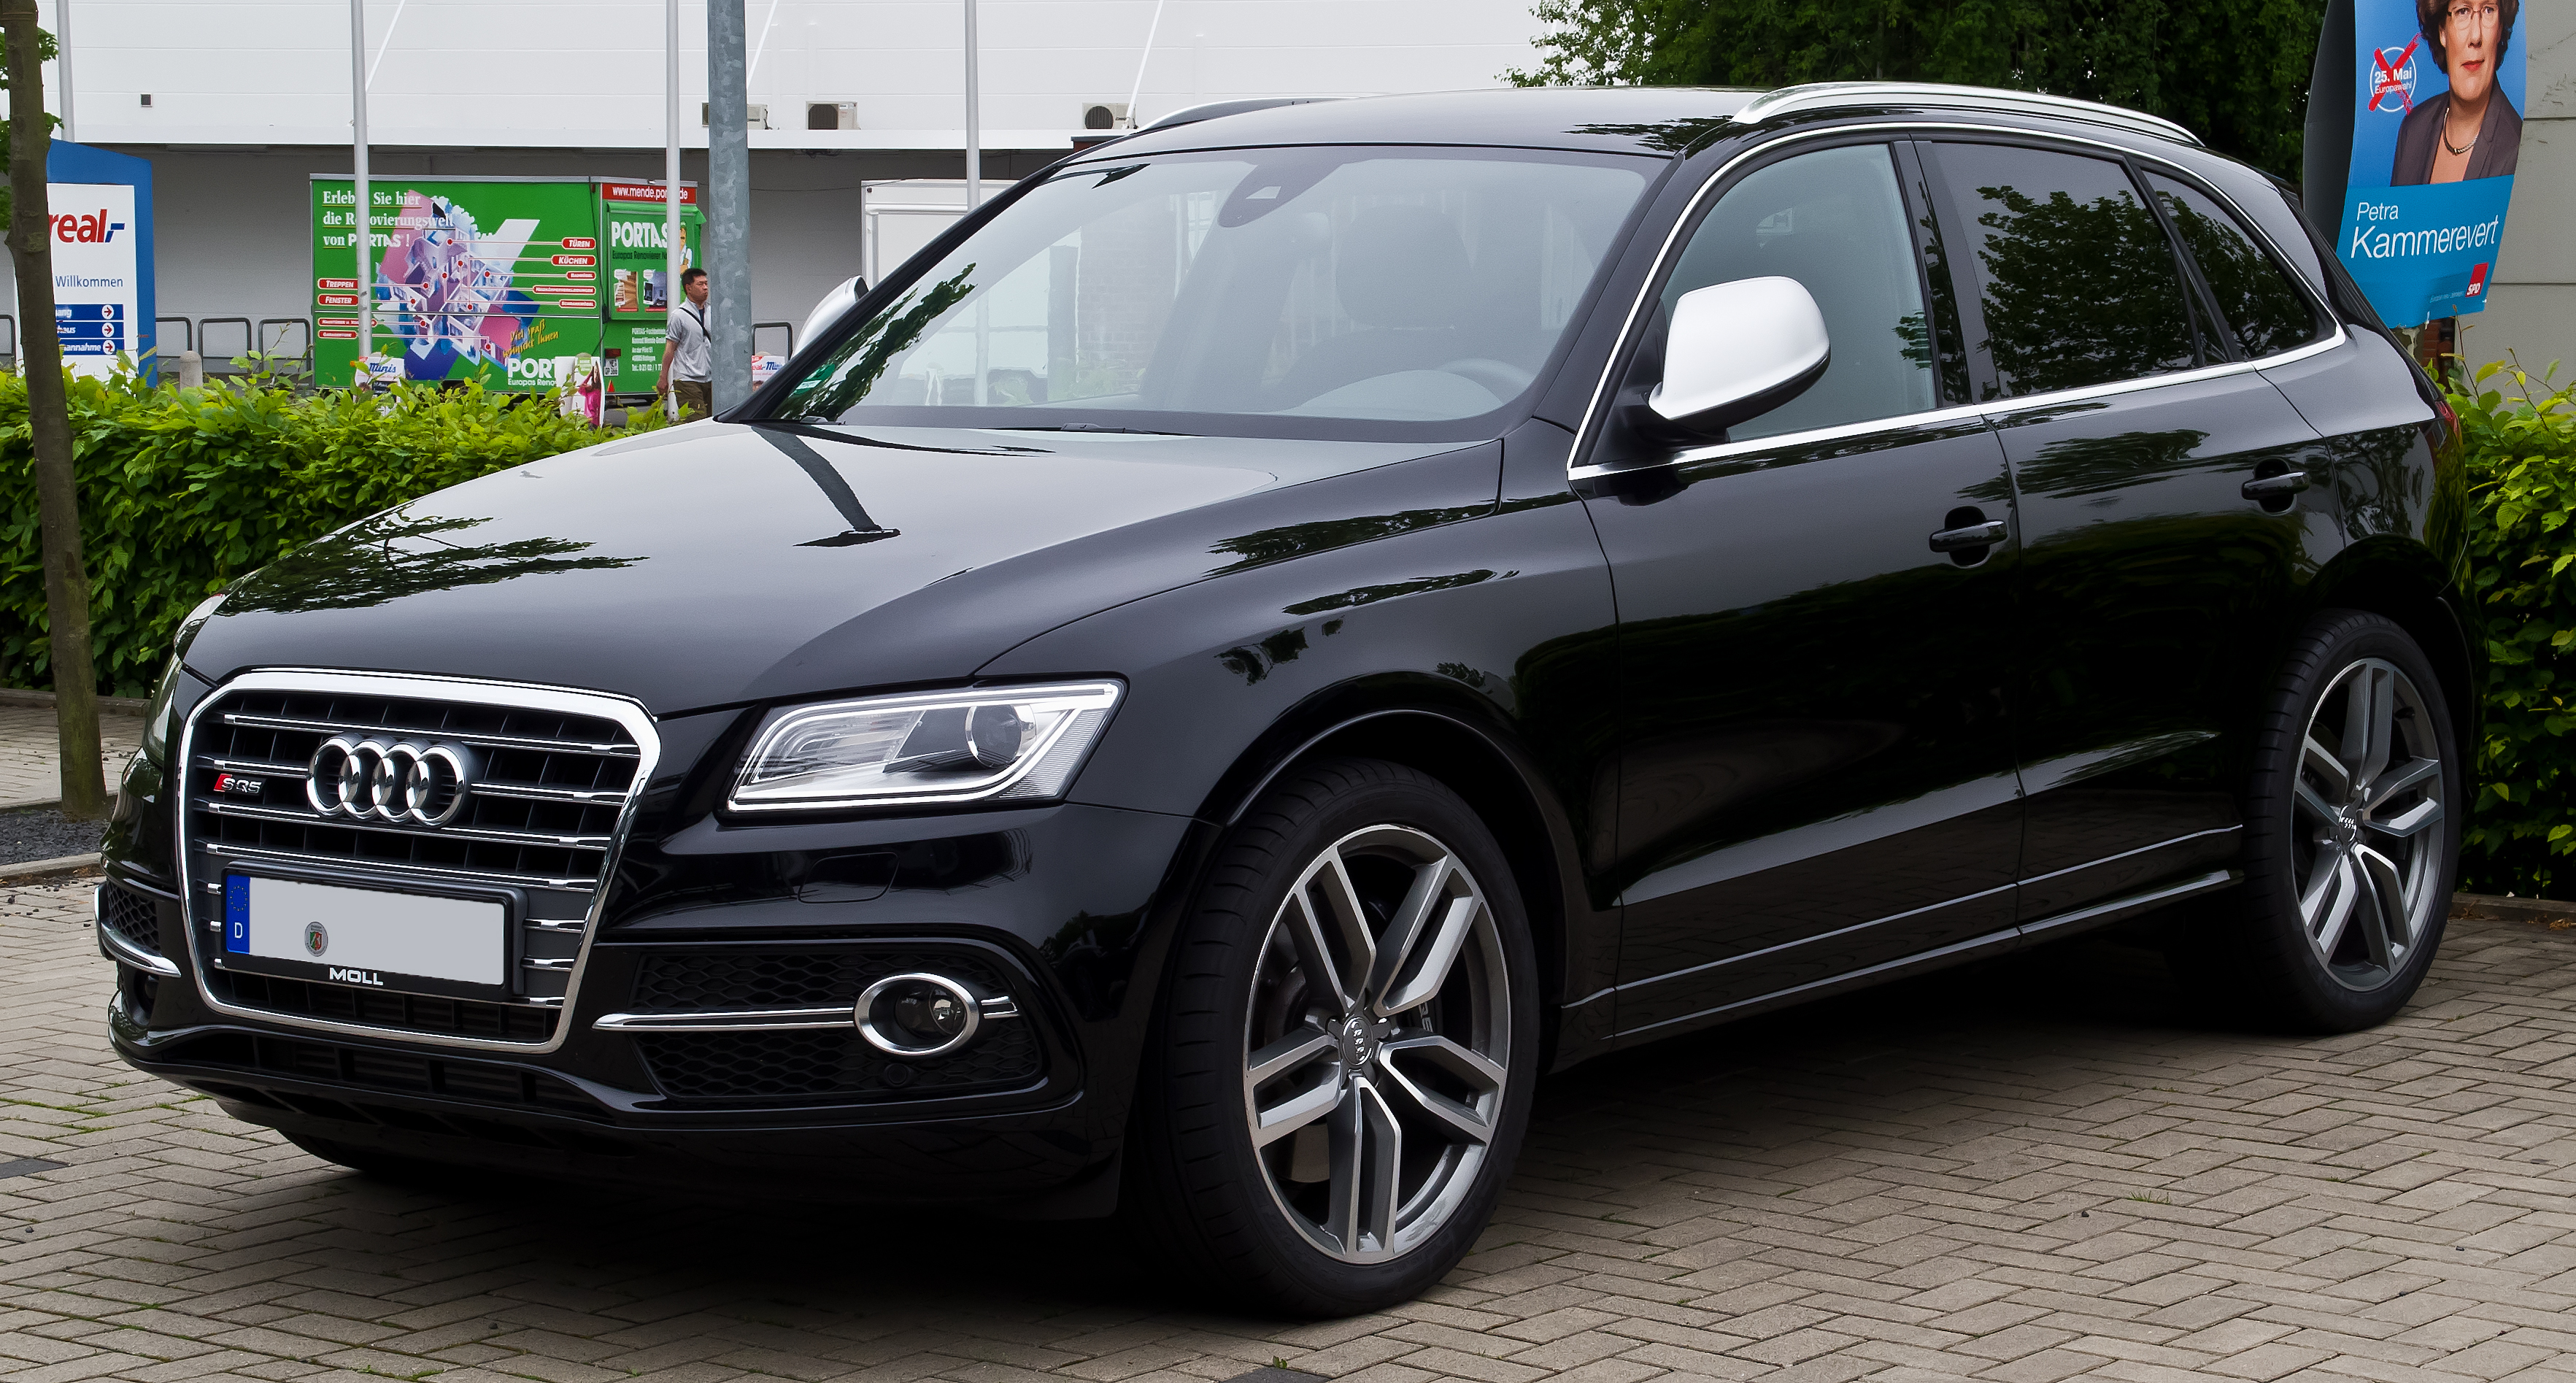 file audi sq5 tdi facelift frontansicht 27 april 2014 d wikimedia commons. Black Bedroom Furniture Sets. Home Design Ideas